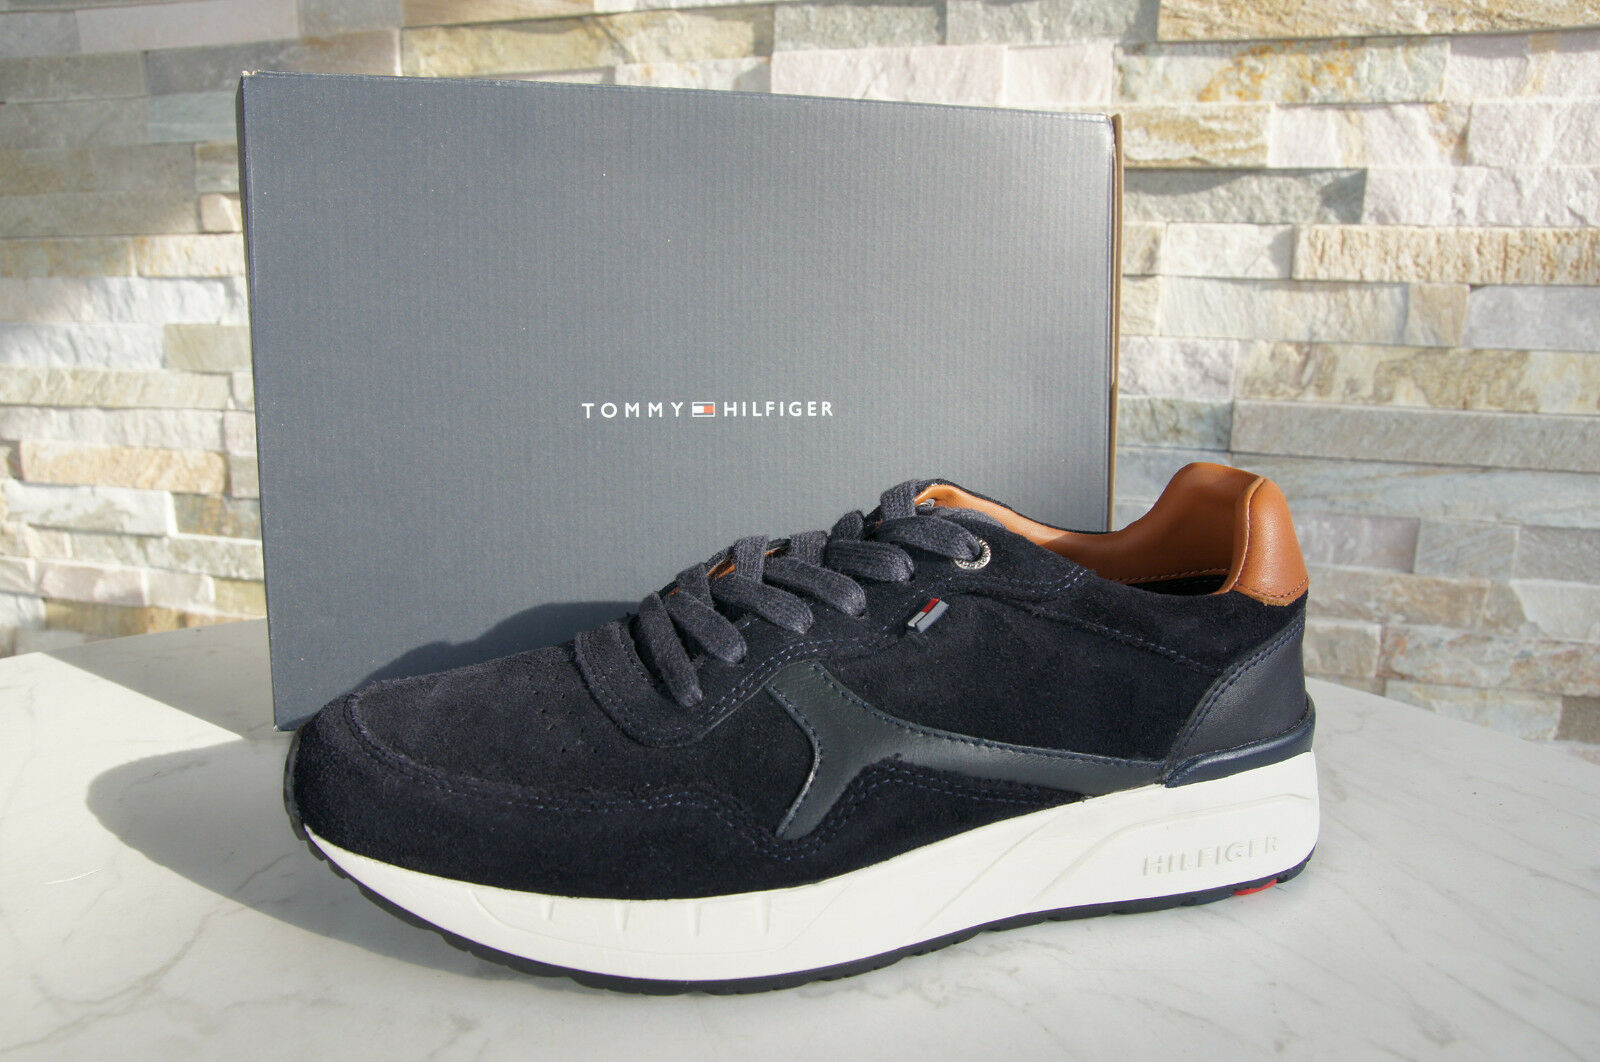 TOMMY TOMMY TOMMY HILFIGER Gr 40 Sneakers SchnürZapatos Zapatos RUSH dunkelblau NEU UVP 135 329123